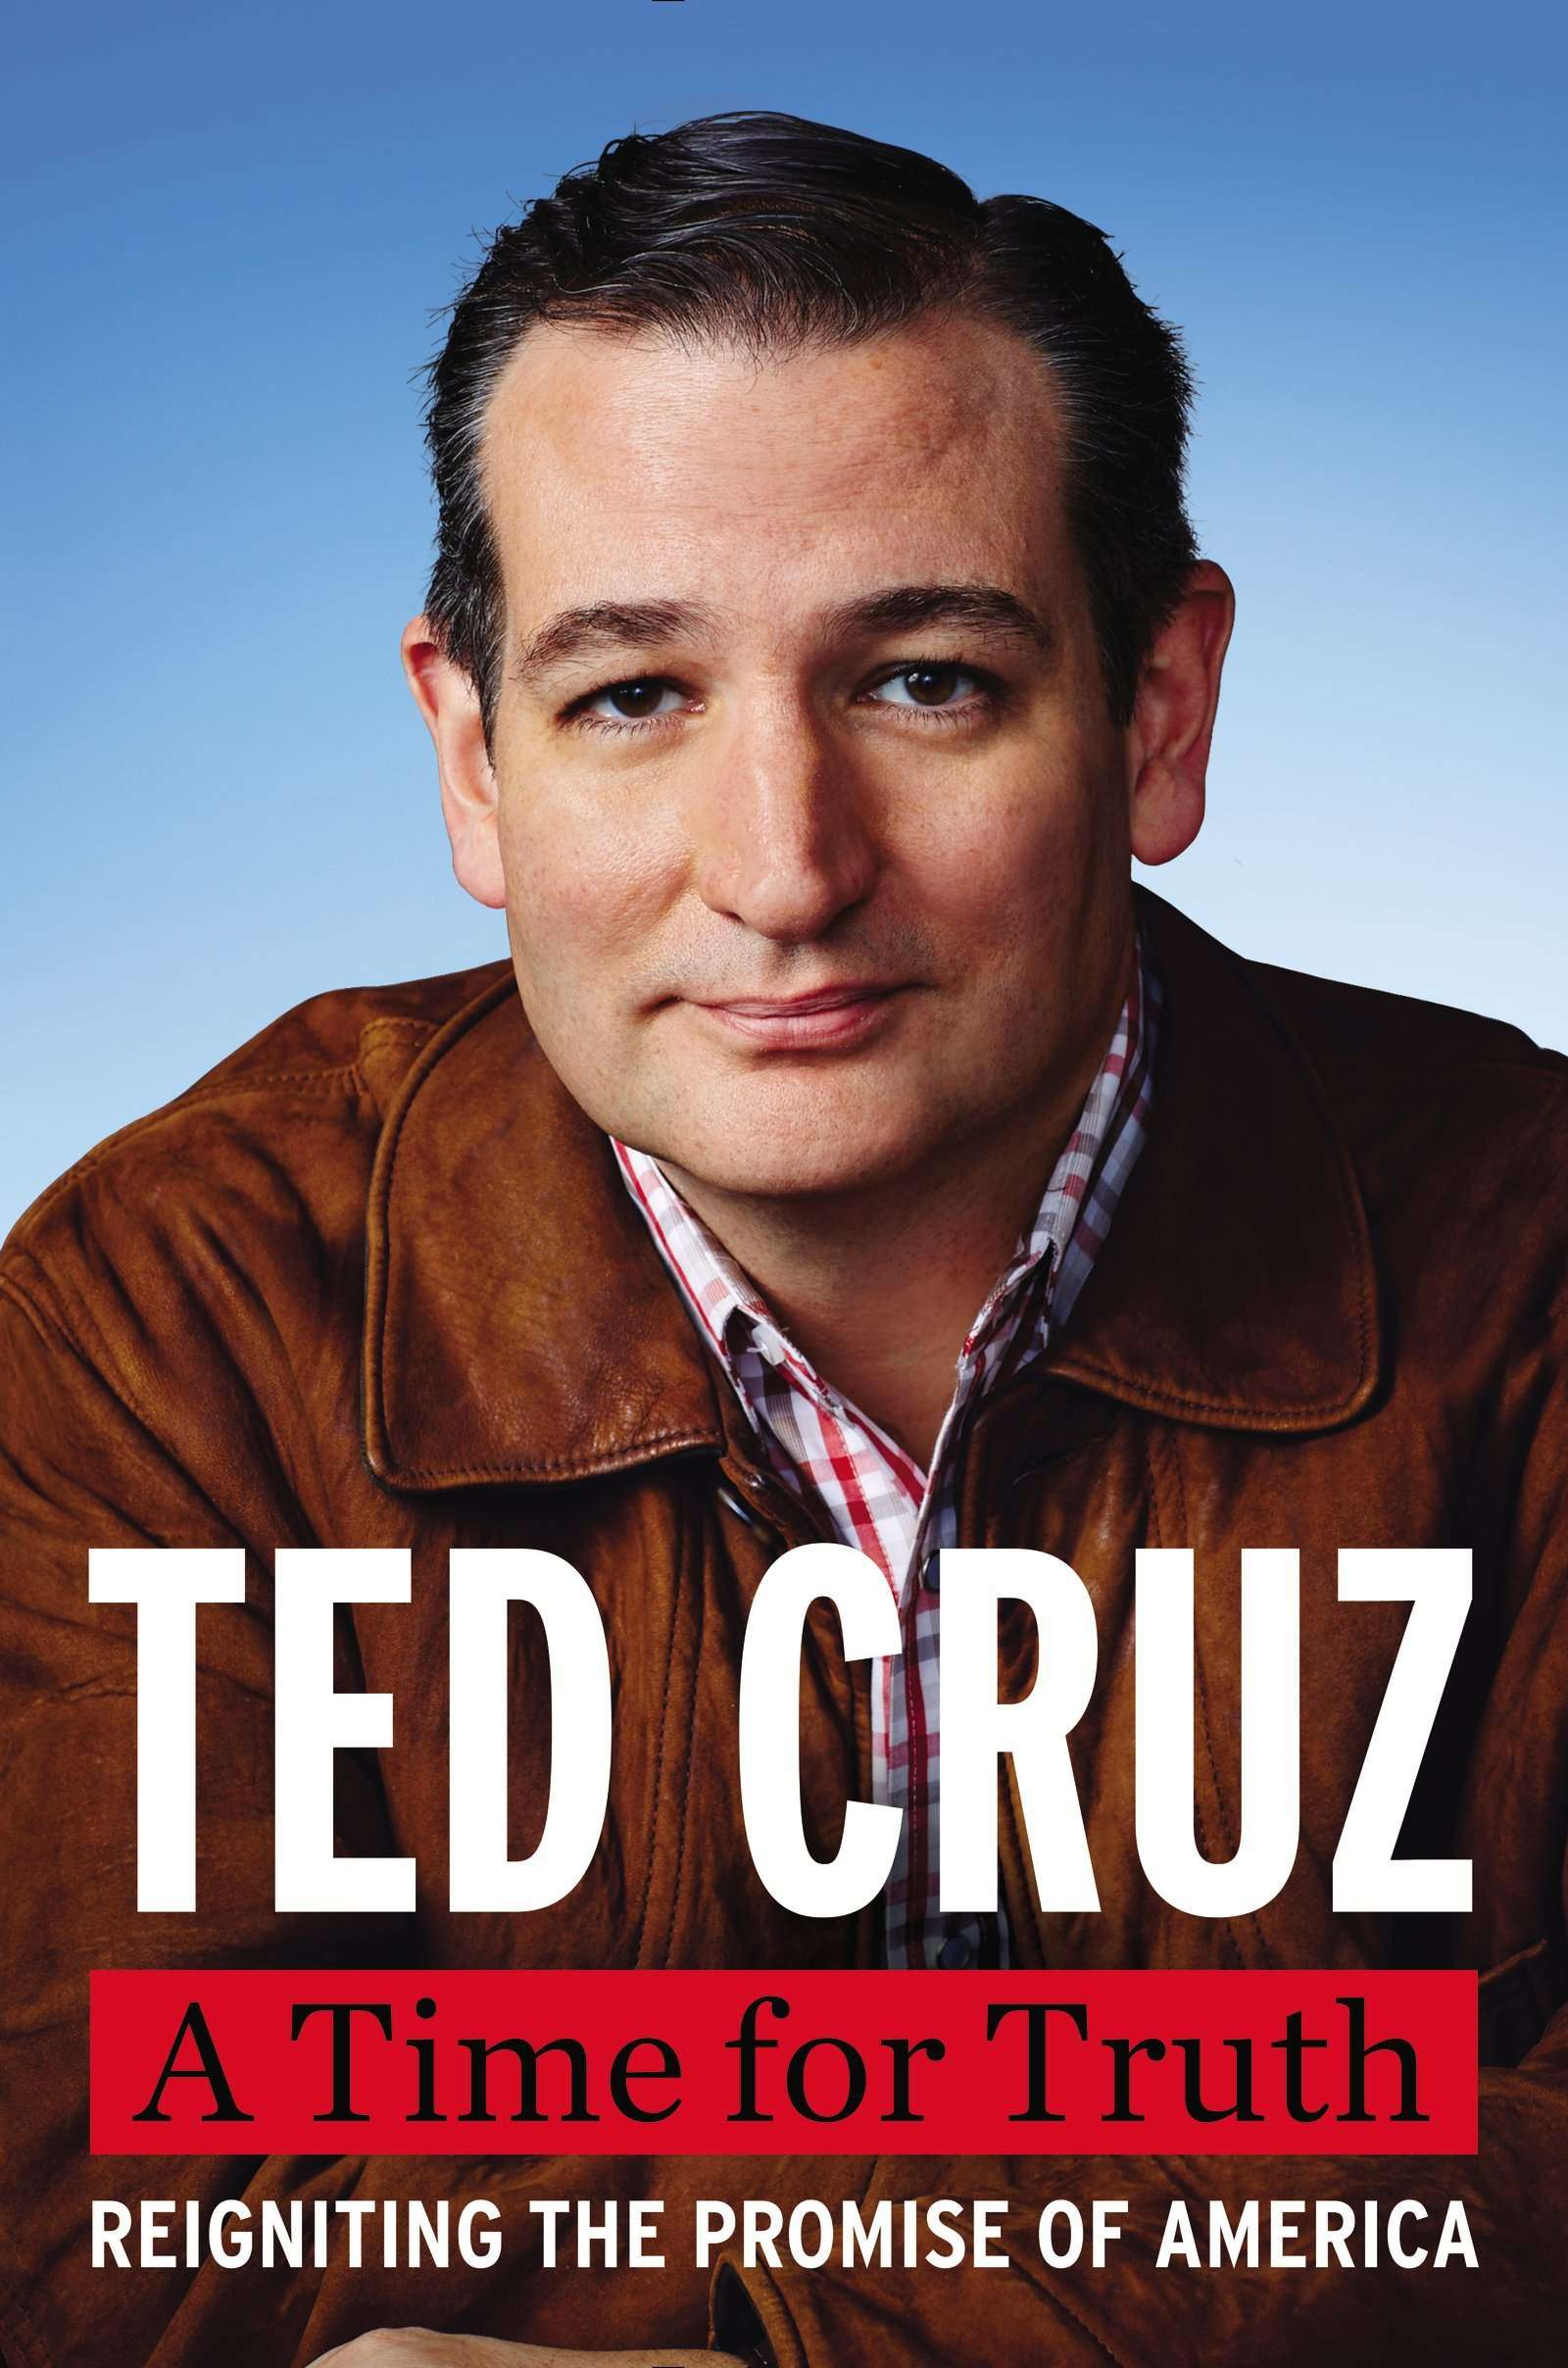 Somebody has to say it: Ted Cruz has the prettiest eyelashes in the current field of candidates.